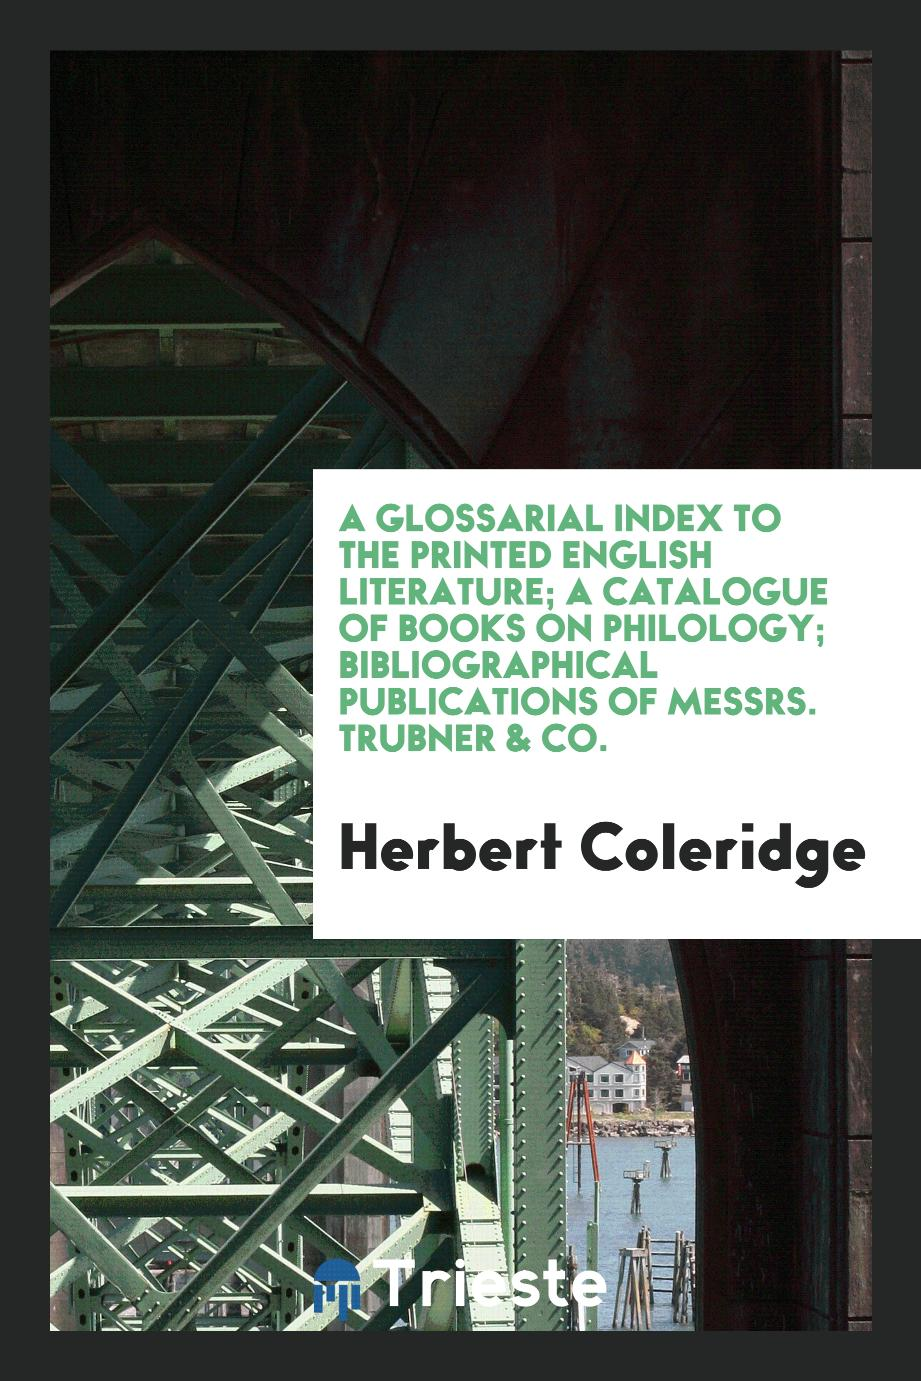 A glossarial index to the printed English literature; A catalogue of books on philology; Bibliographical publications of Messrs. Trubner & Co.